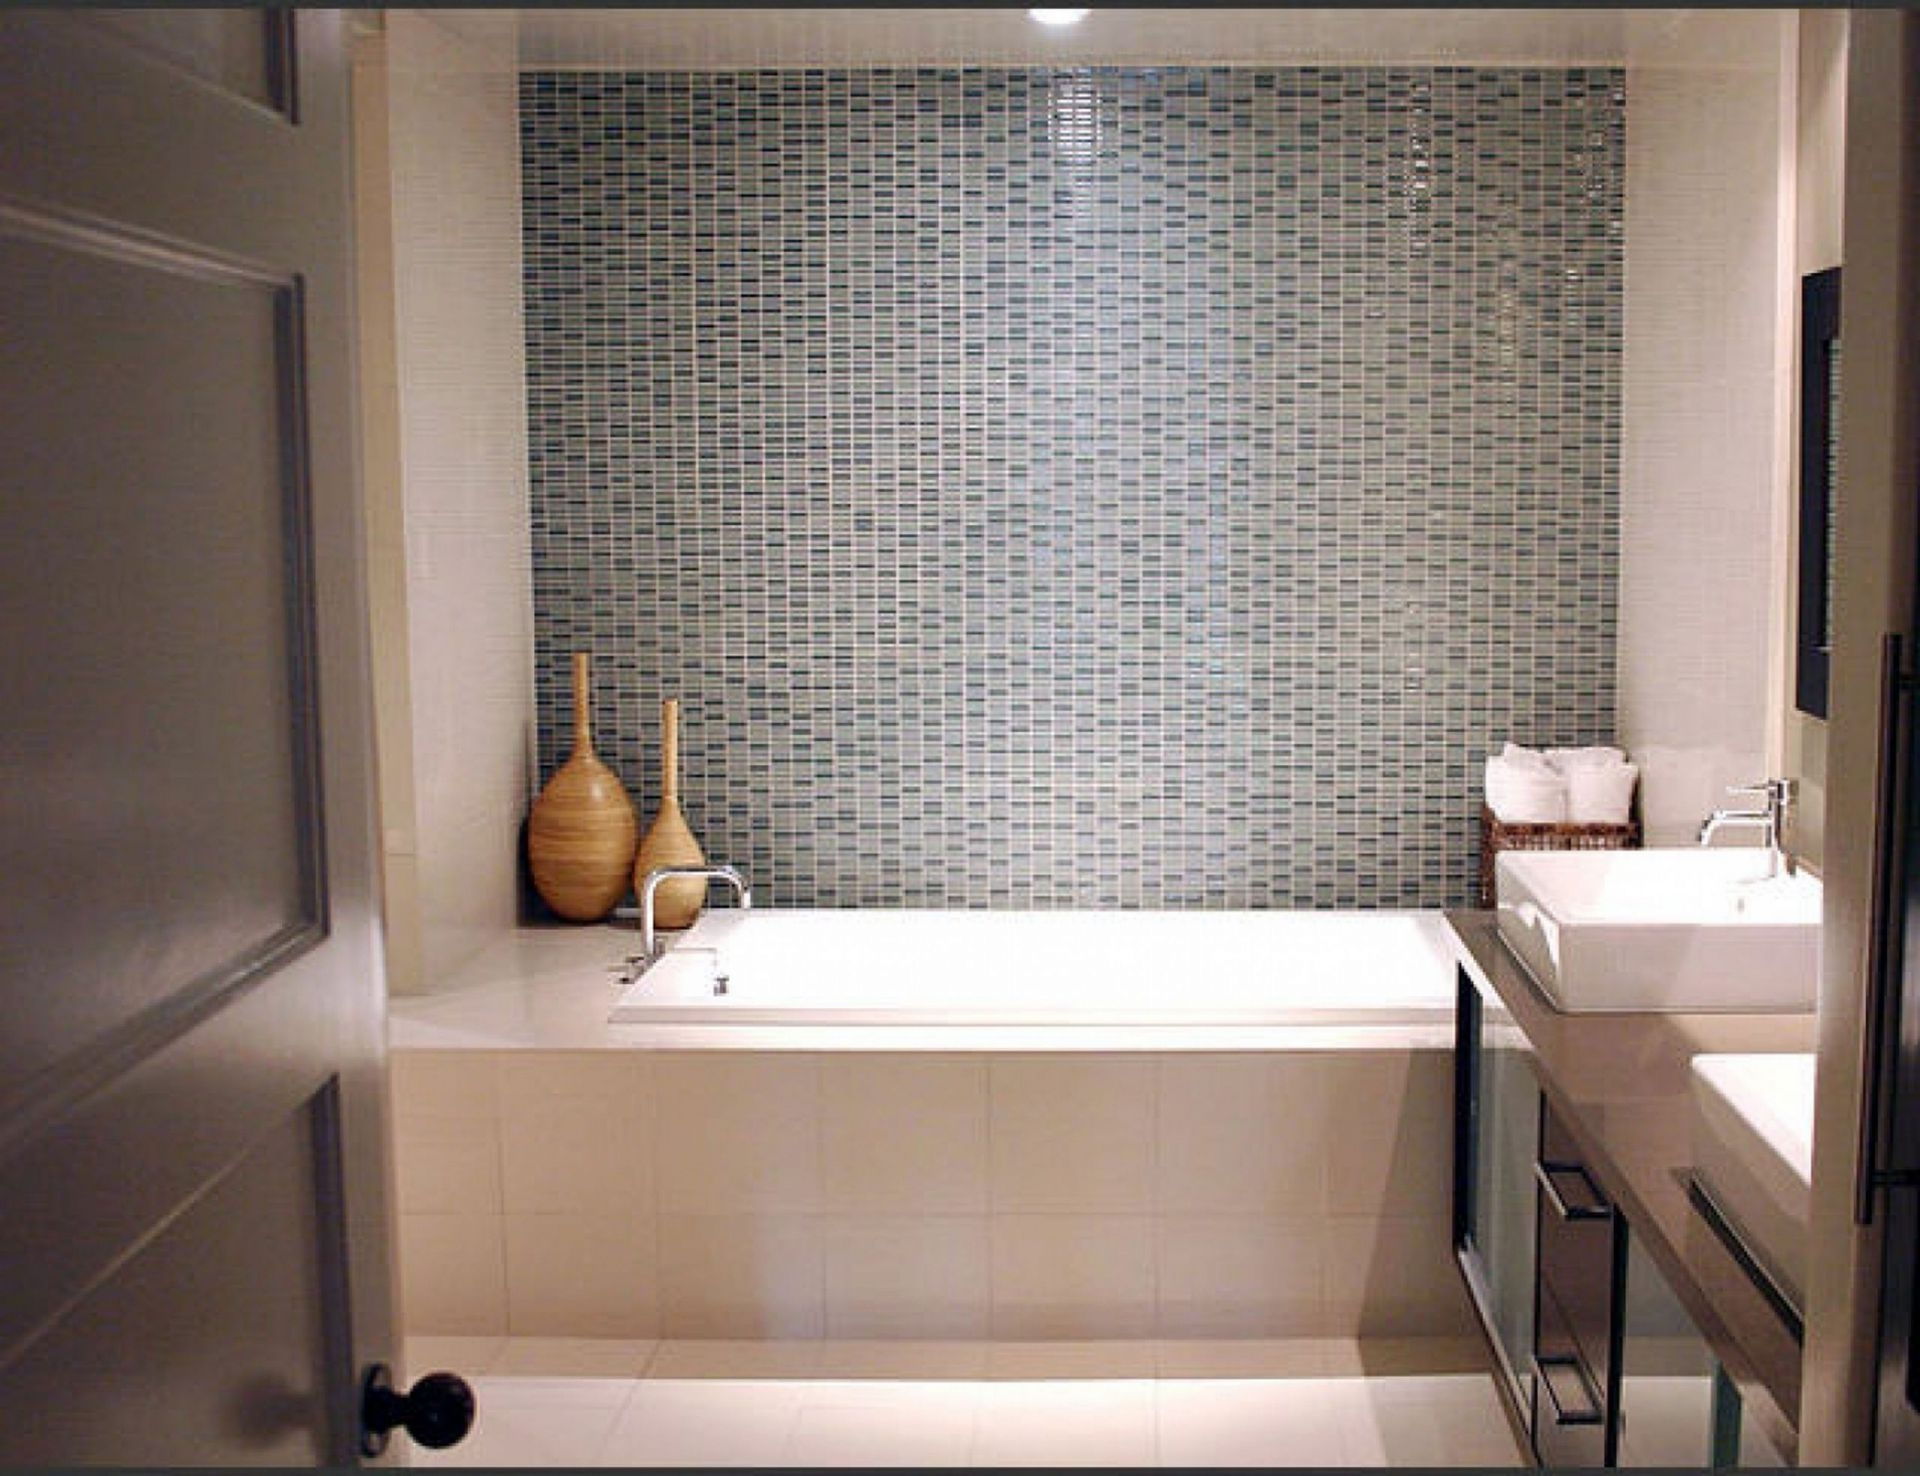 A bathroom is one of the most important place in our house where we can find comfort and serenity It is a room for personal hygiene generally containing a bathtub